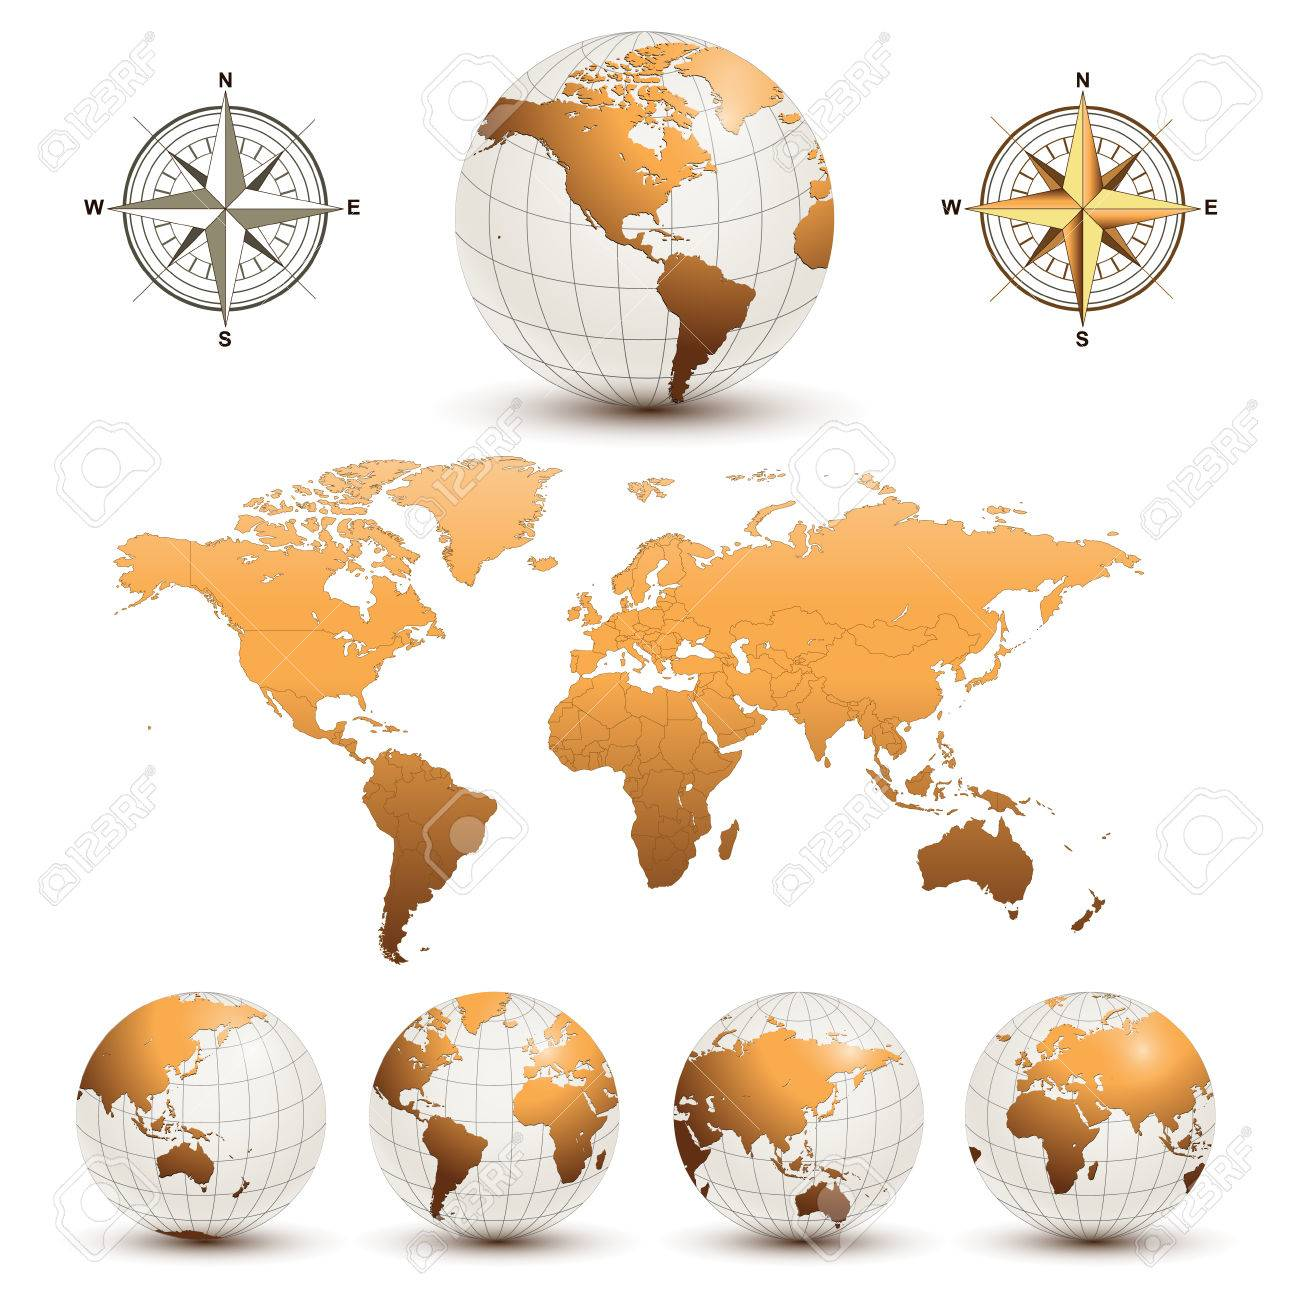 Earth globes with detailed world map Stock Vector - 8078052